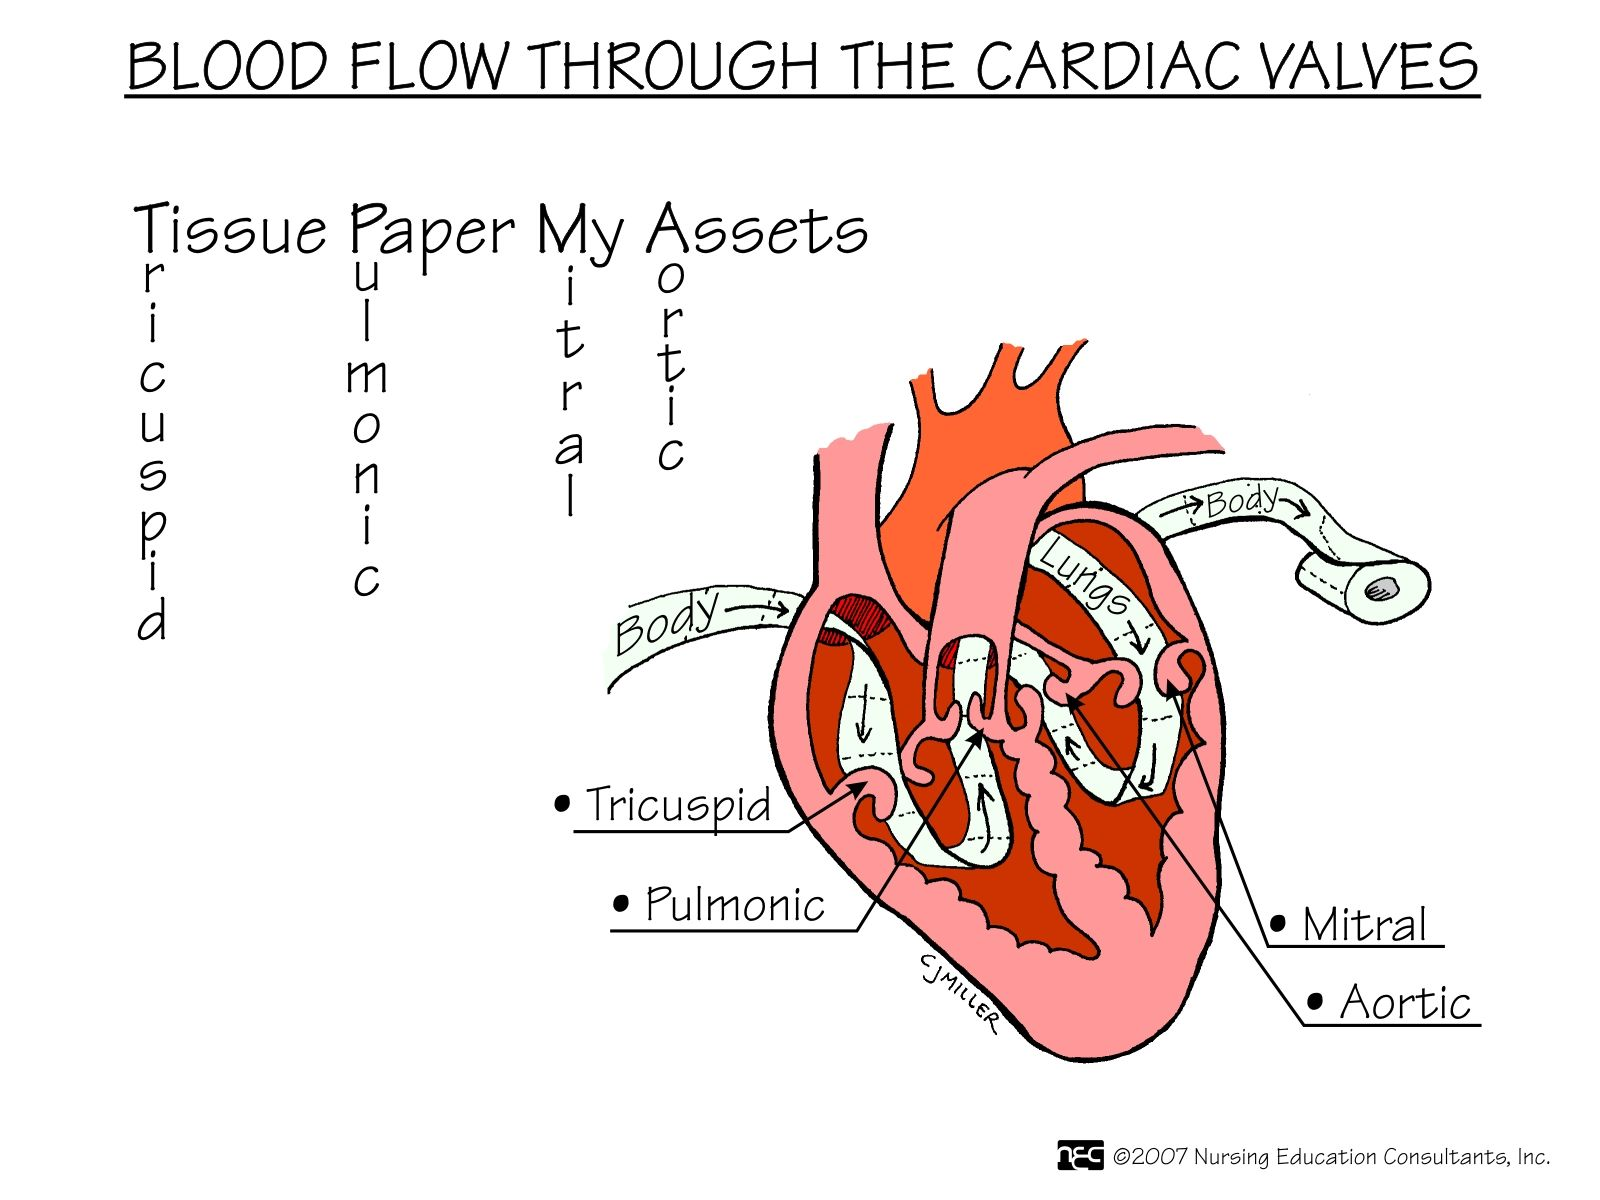 Blood+Flow+Through+The+Cardiac+Valves.jpg 1 600×1 200 pikseliä